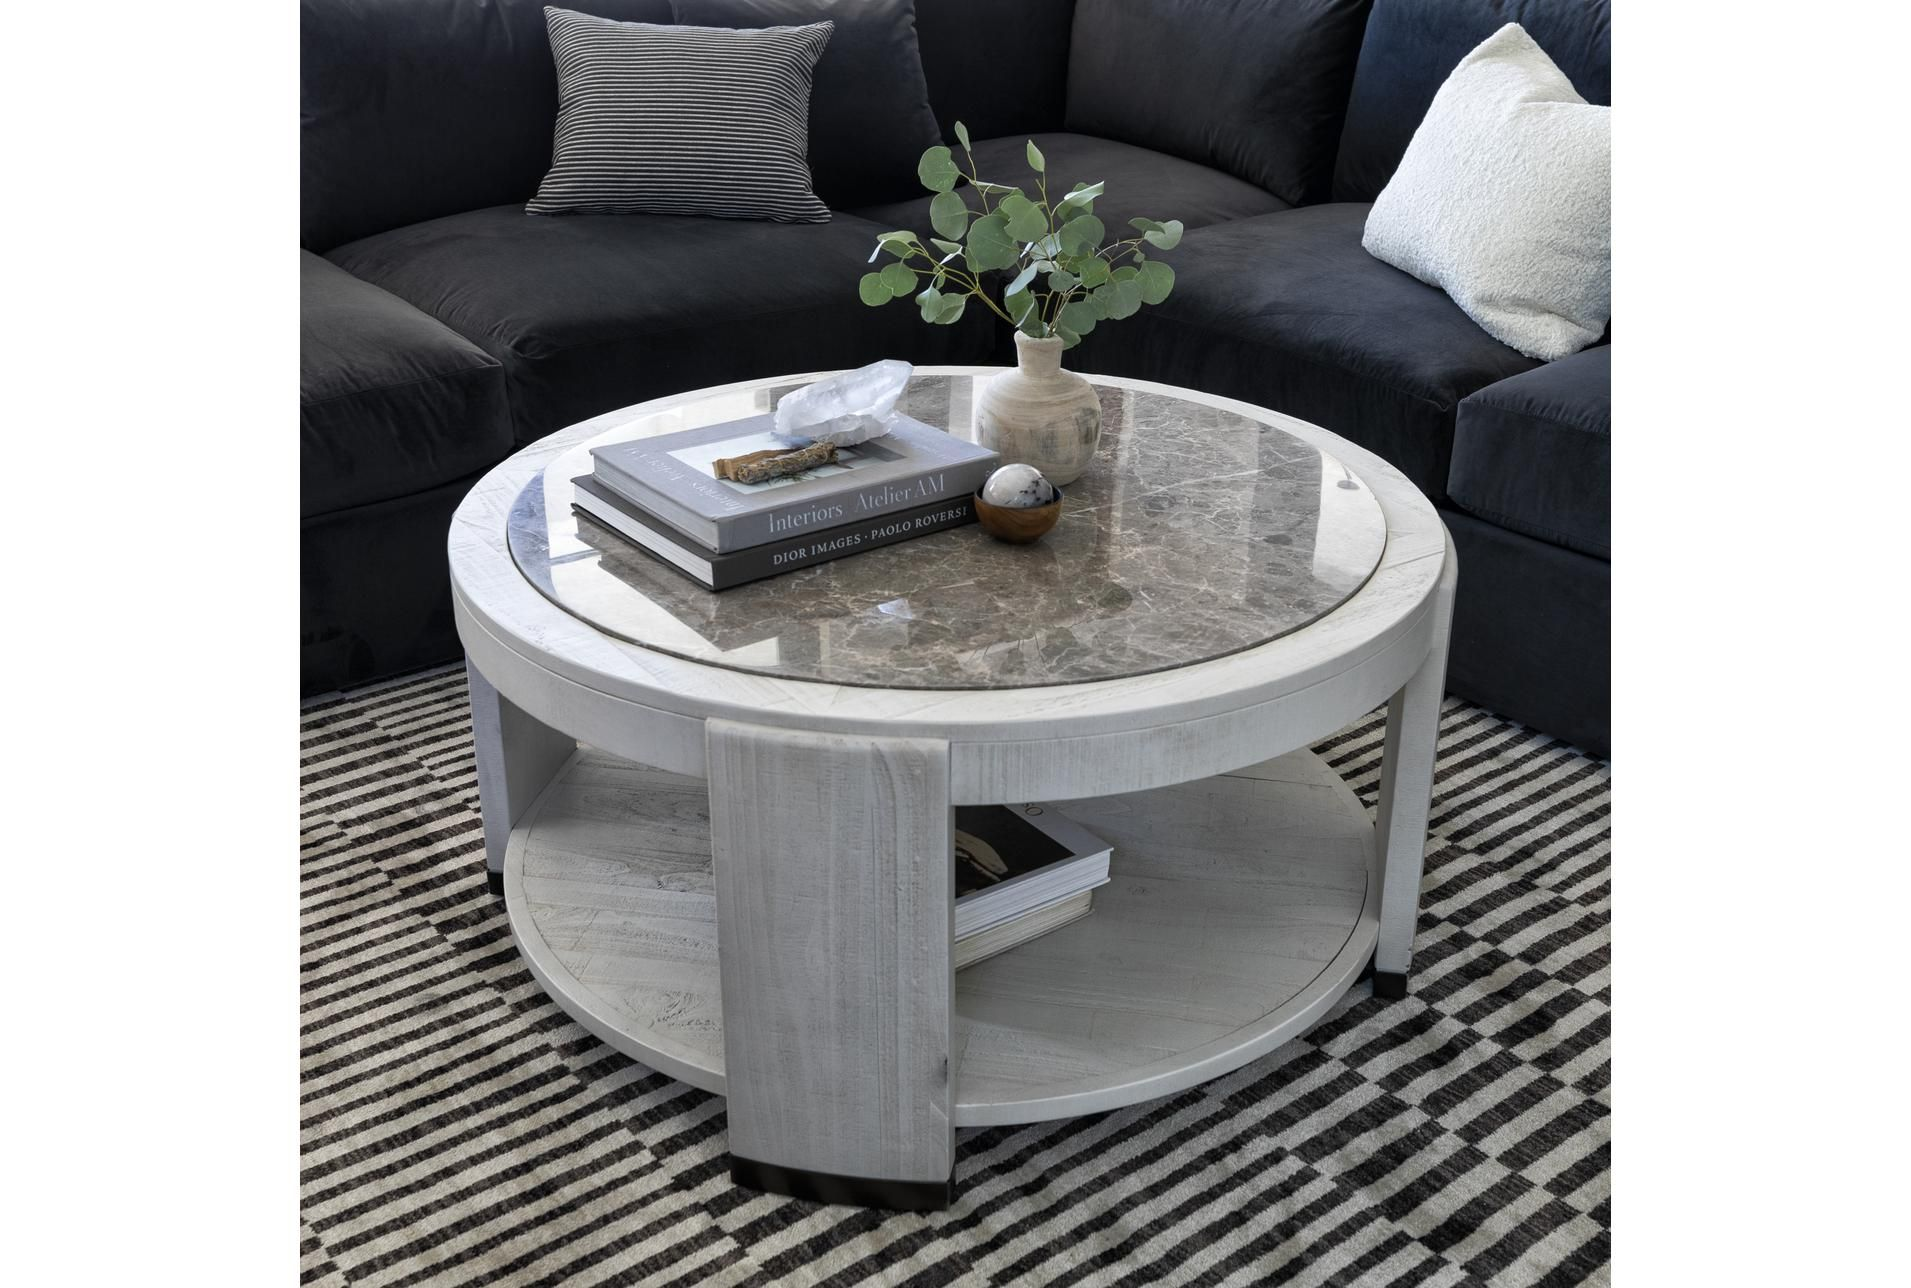 Centre Round Coffee Table By Nate Berkus And Jeremiah Brent In 2021 Round Coffee Table Coffee Table Nate And Jeremiah [ 1288 x 1911 Pixel ]